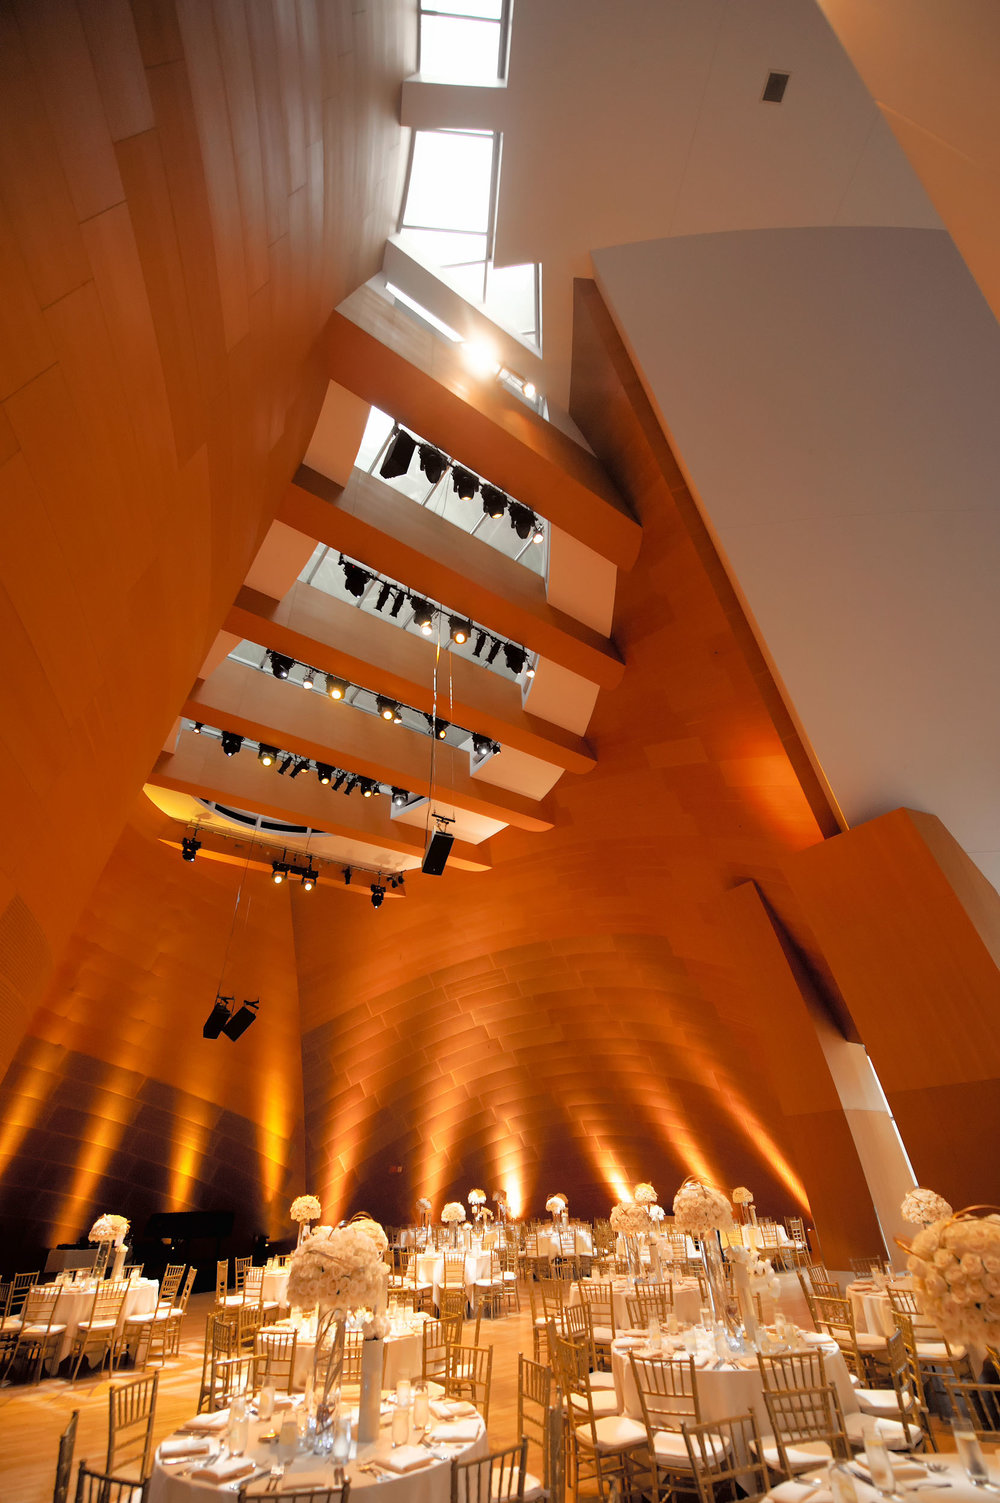 Wedding reception ballroom at the Walt Disney Concert Hall in Los Angeles.